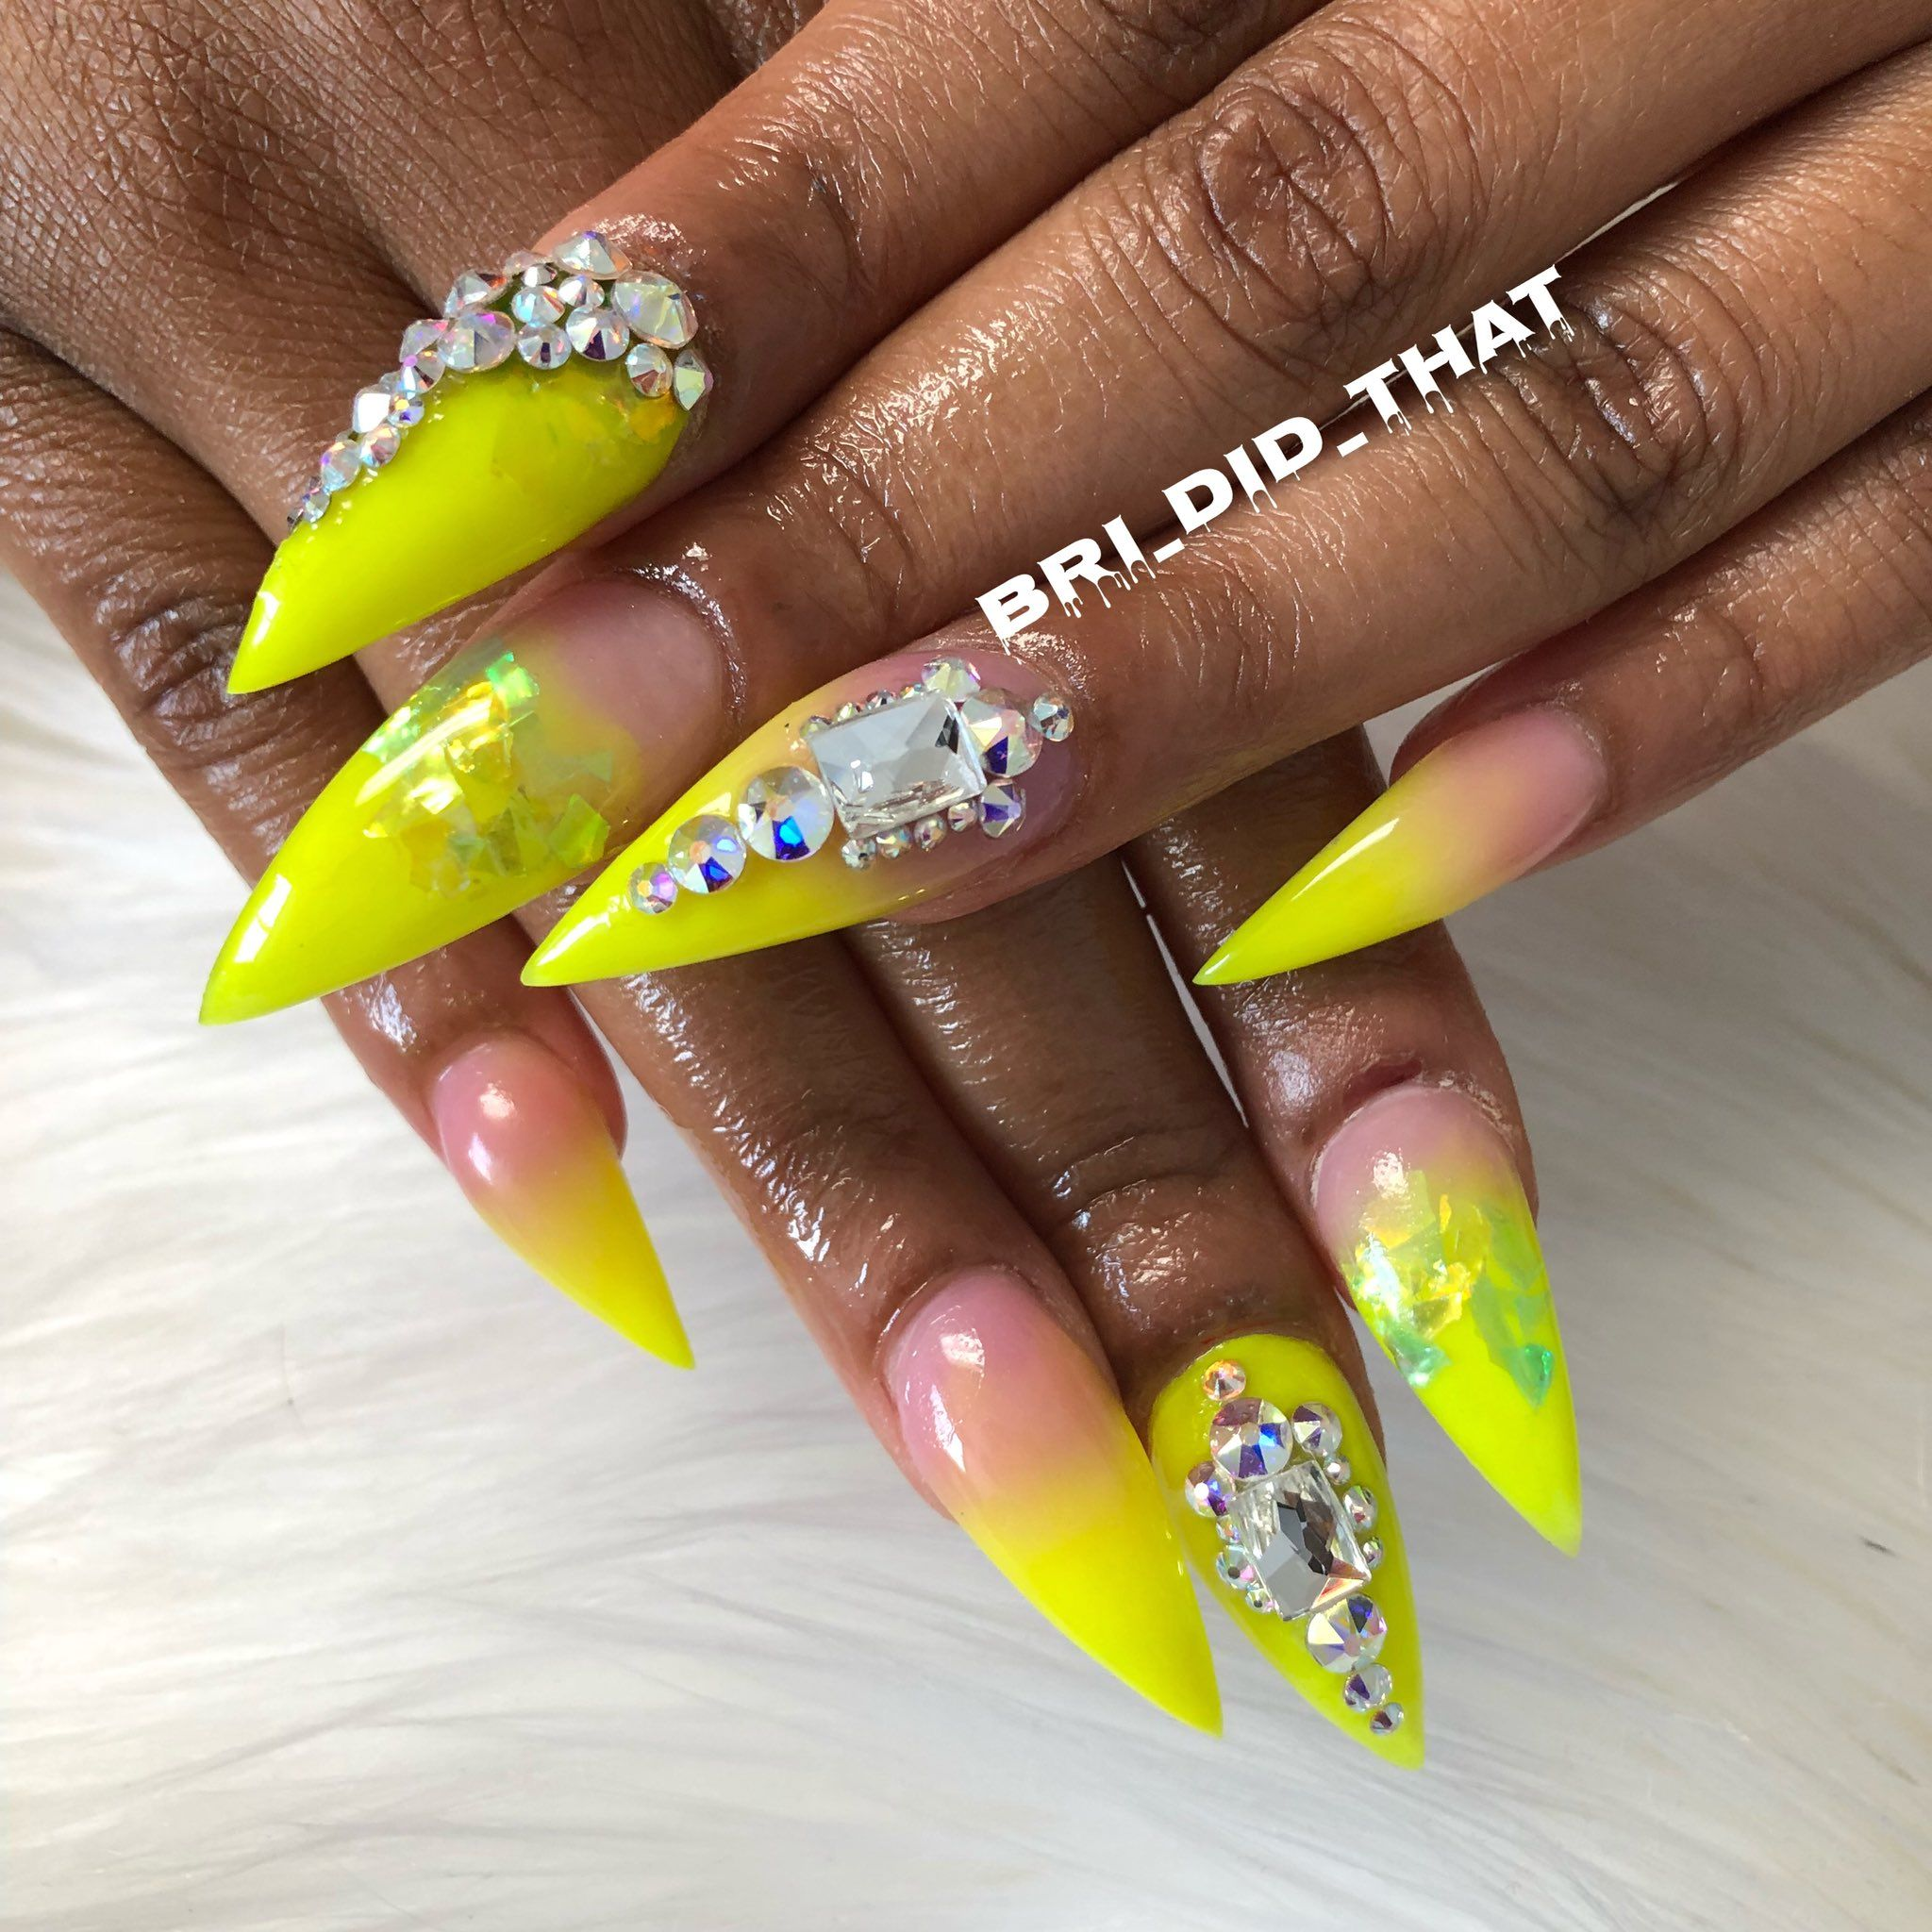 Pin by Connie Hernandez on new nail styles | Pinterest | Check, Nail ...